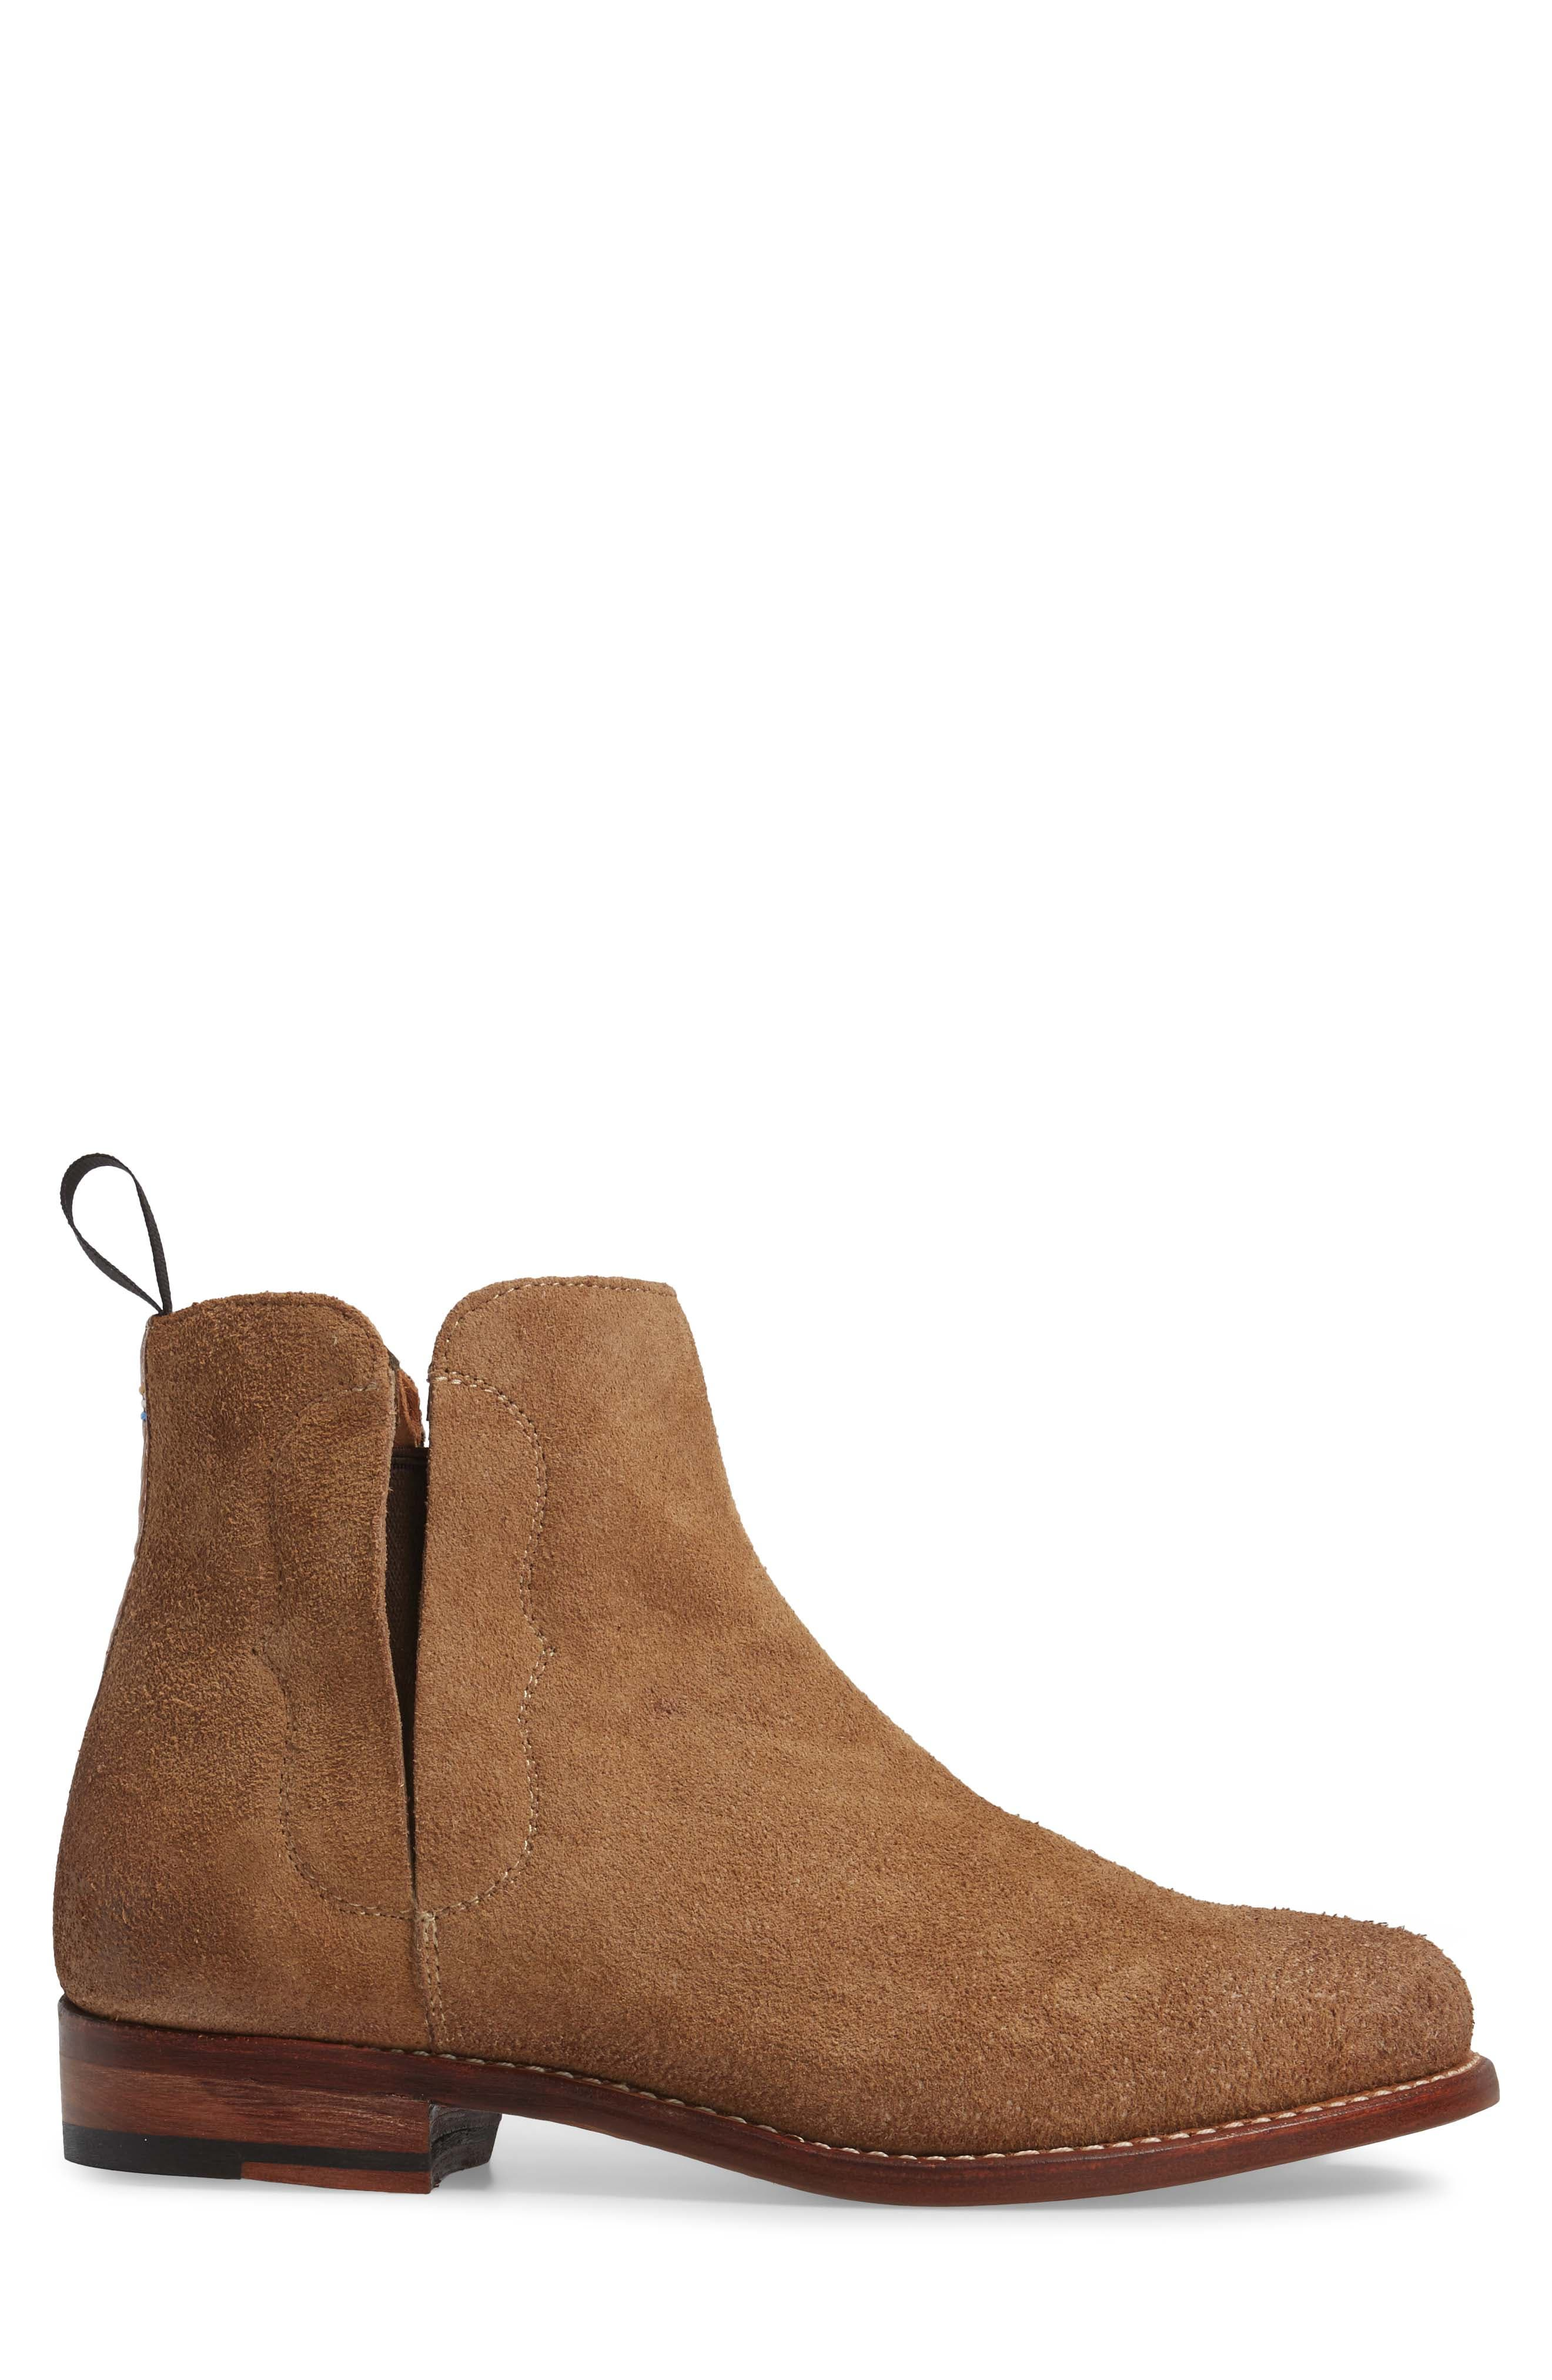 Ariat Maxwell Chelsea Boot,                             Alternate thumbnail 3, color,                             Amaretto Suede